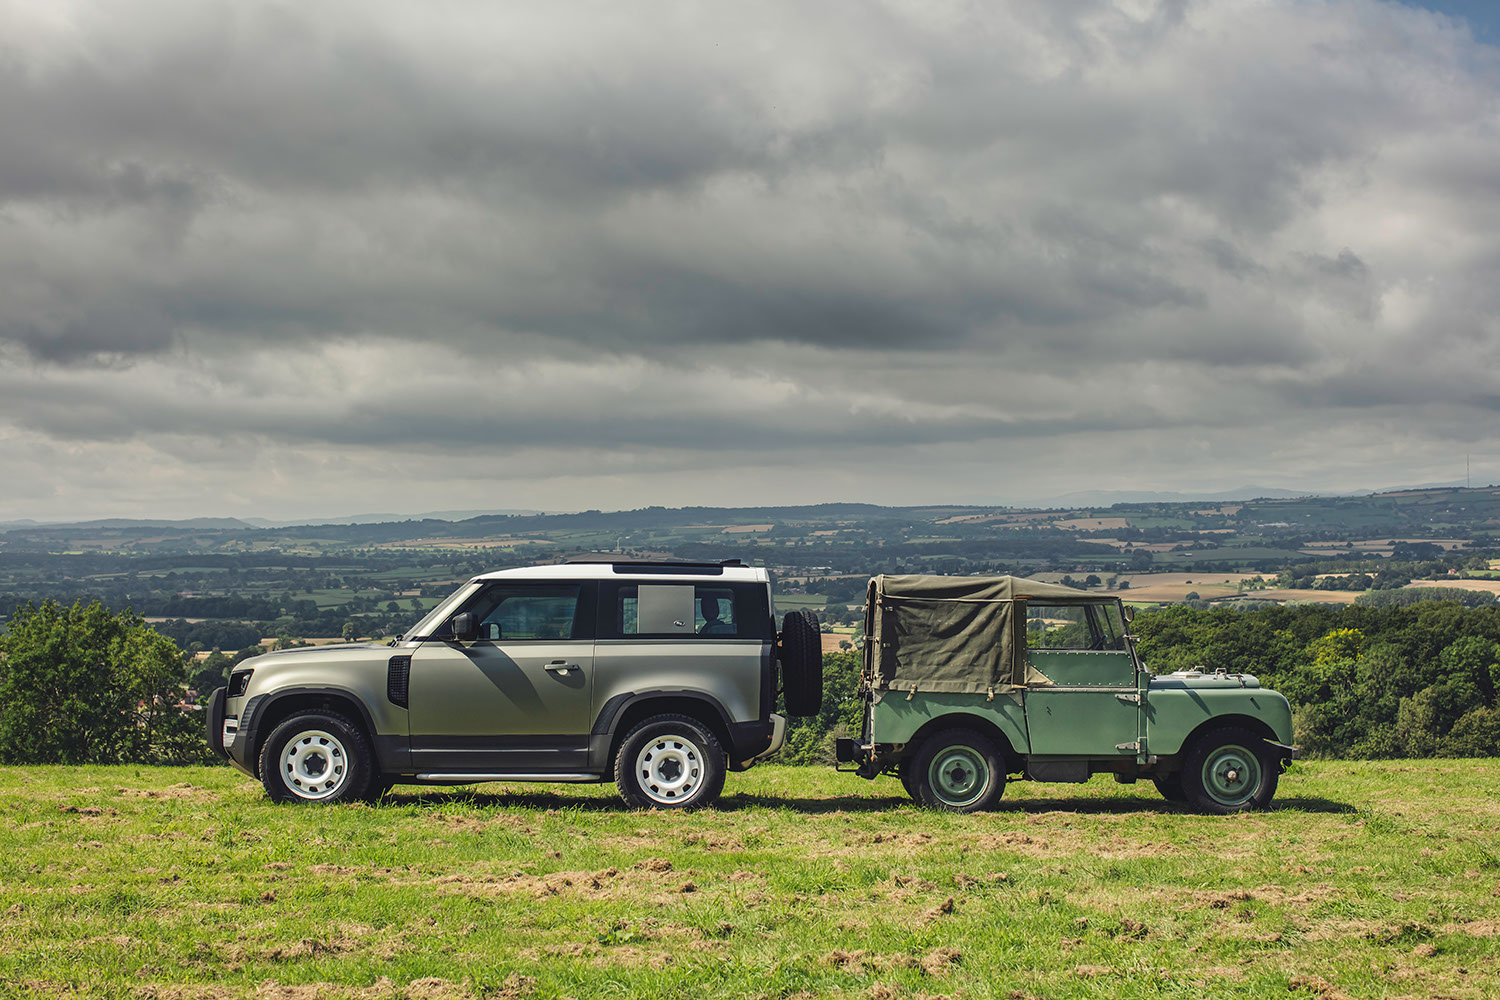 The 2019 Defender next to its 1990 ancestor (Image © Land Rover)